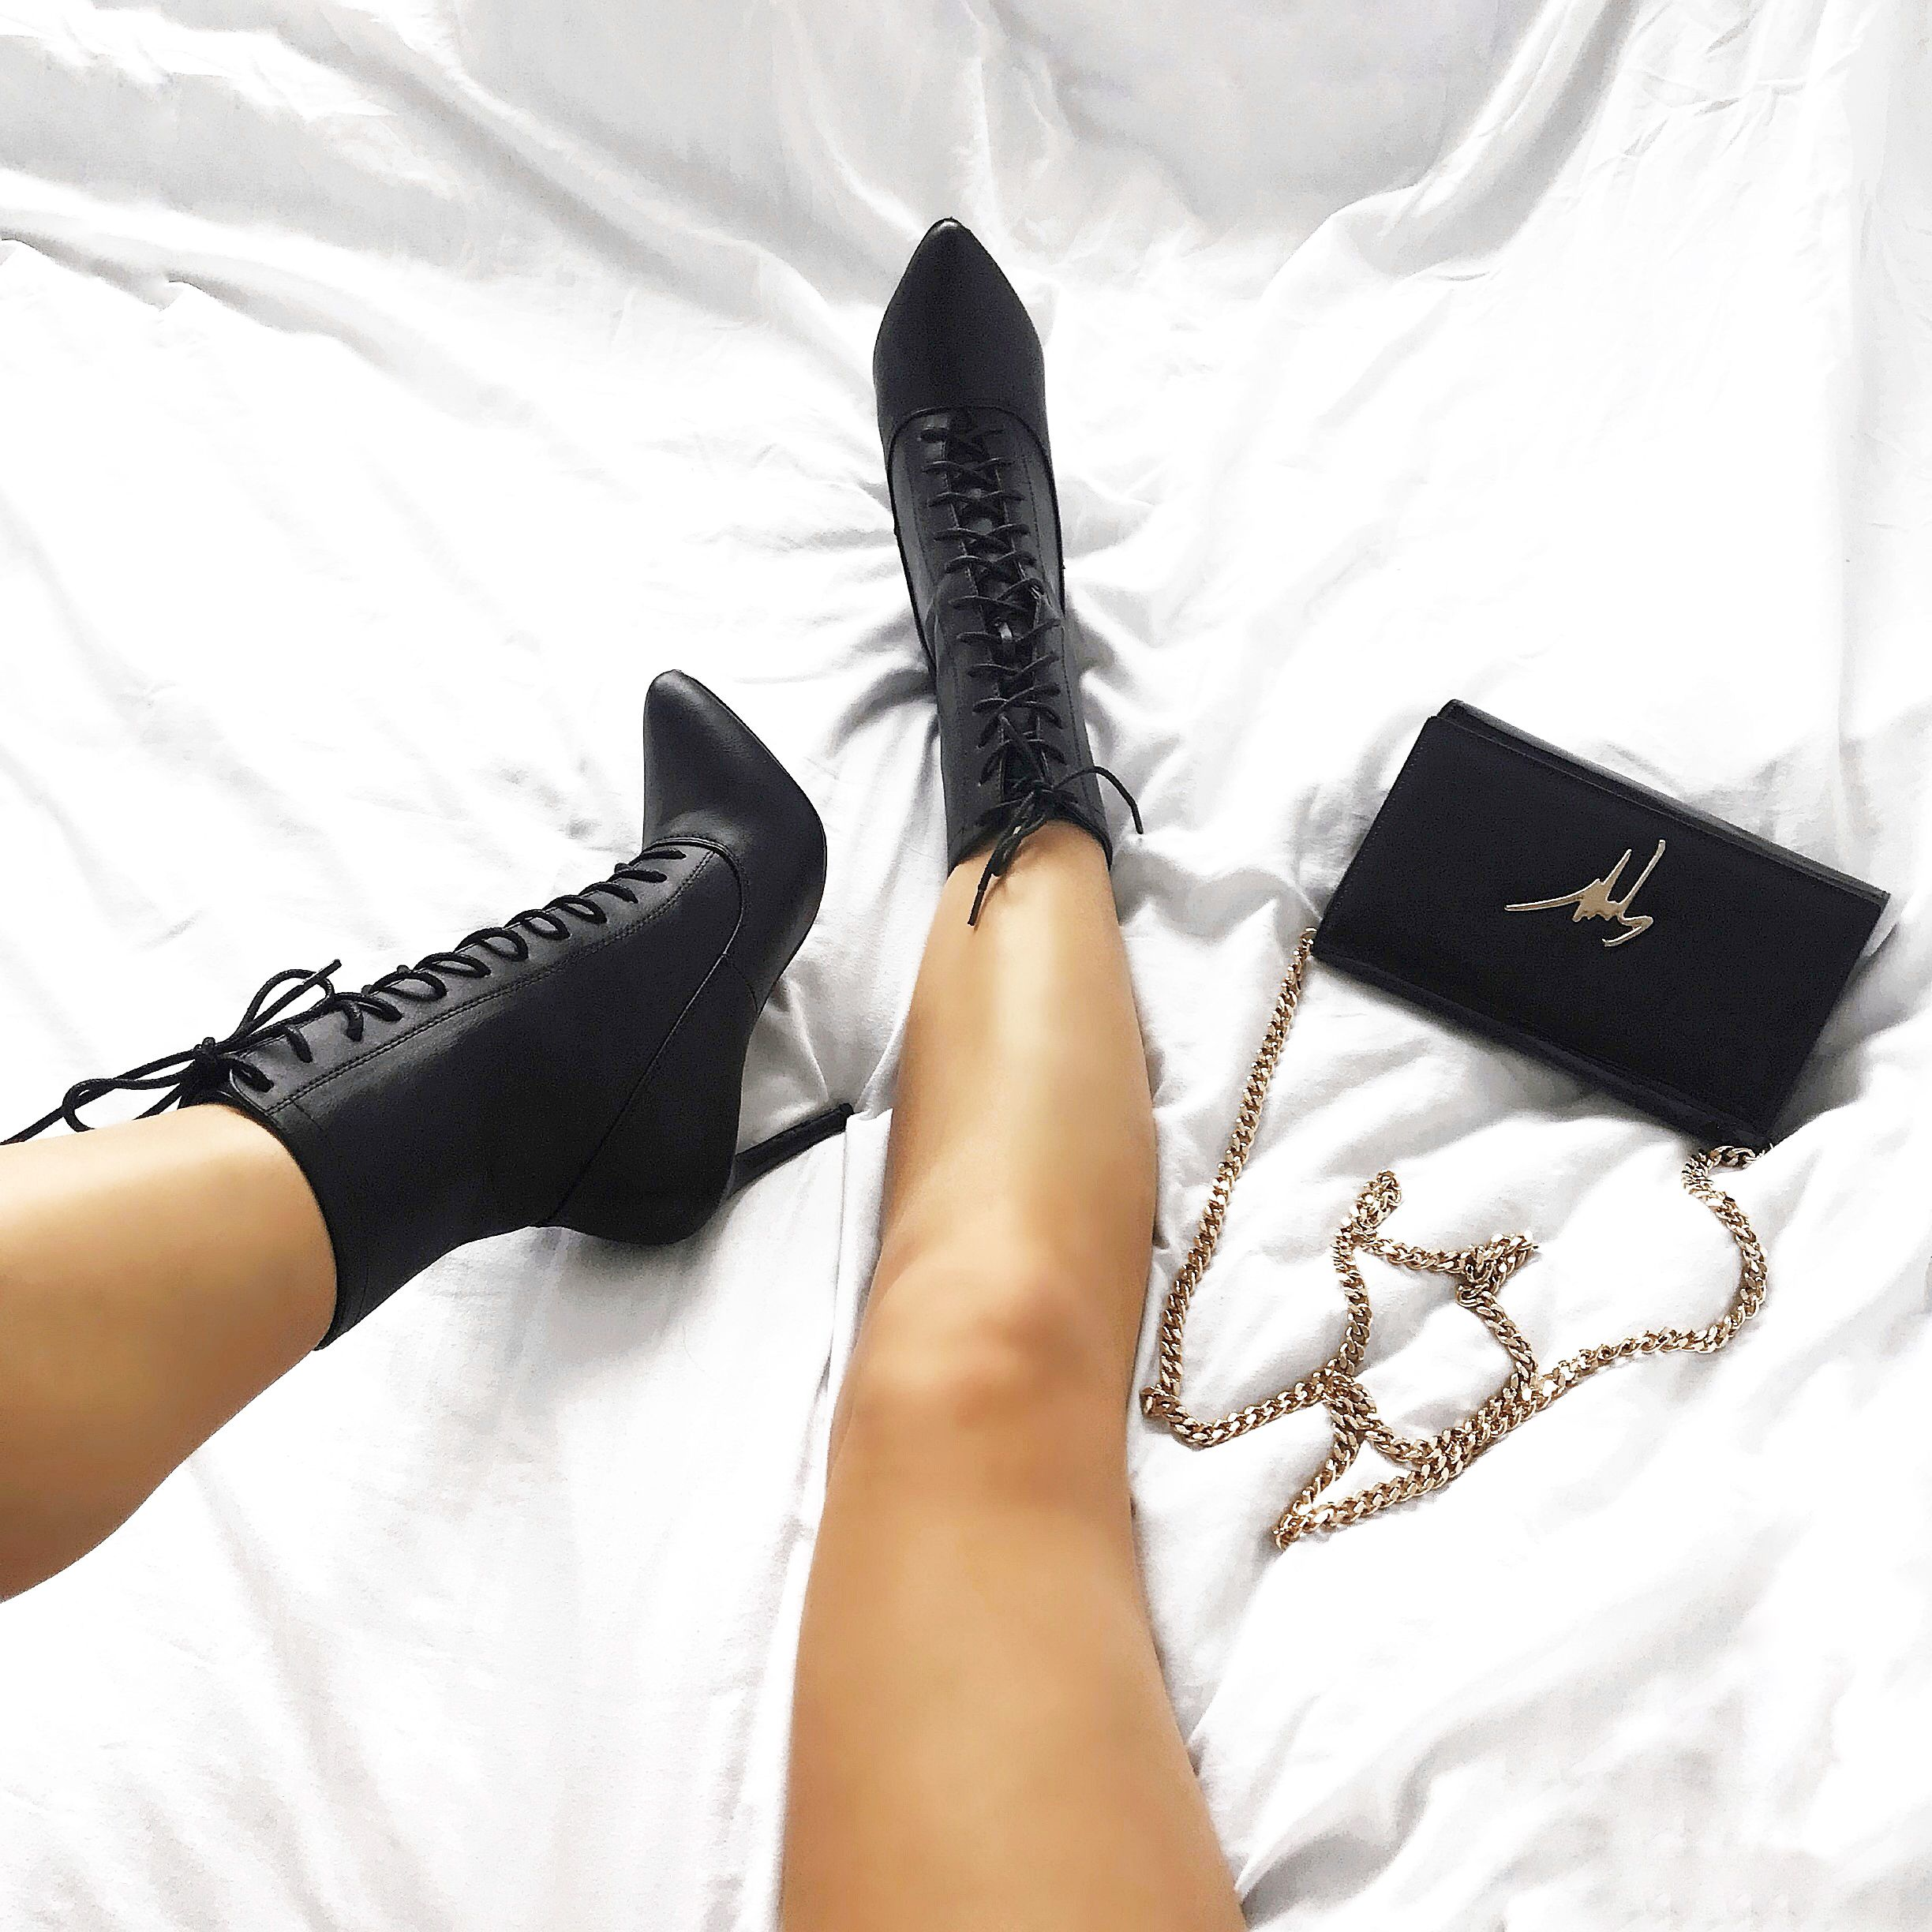 Pin by XY LONDON on XY LONDON   Boots, Chelsea boots